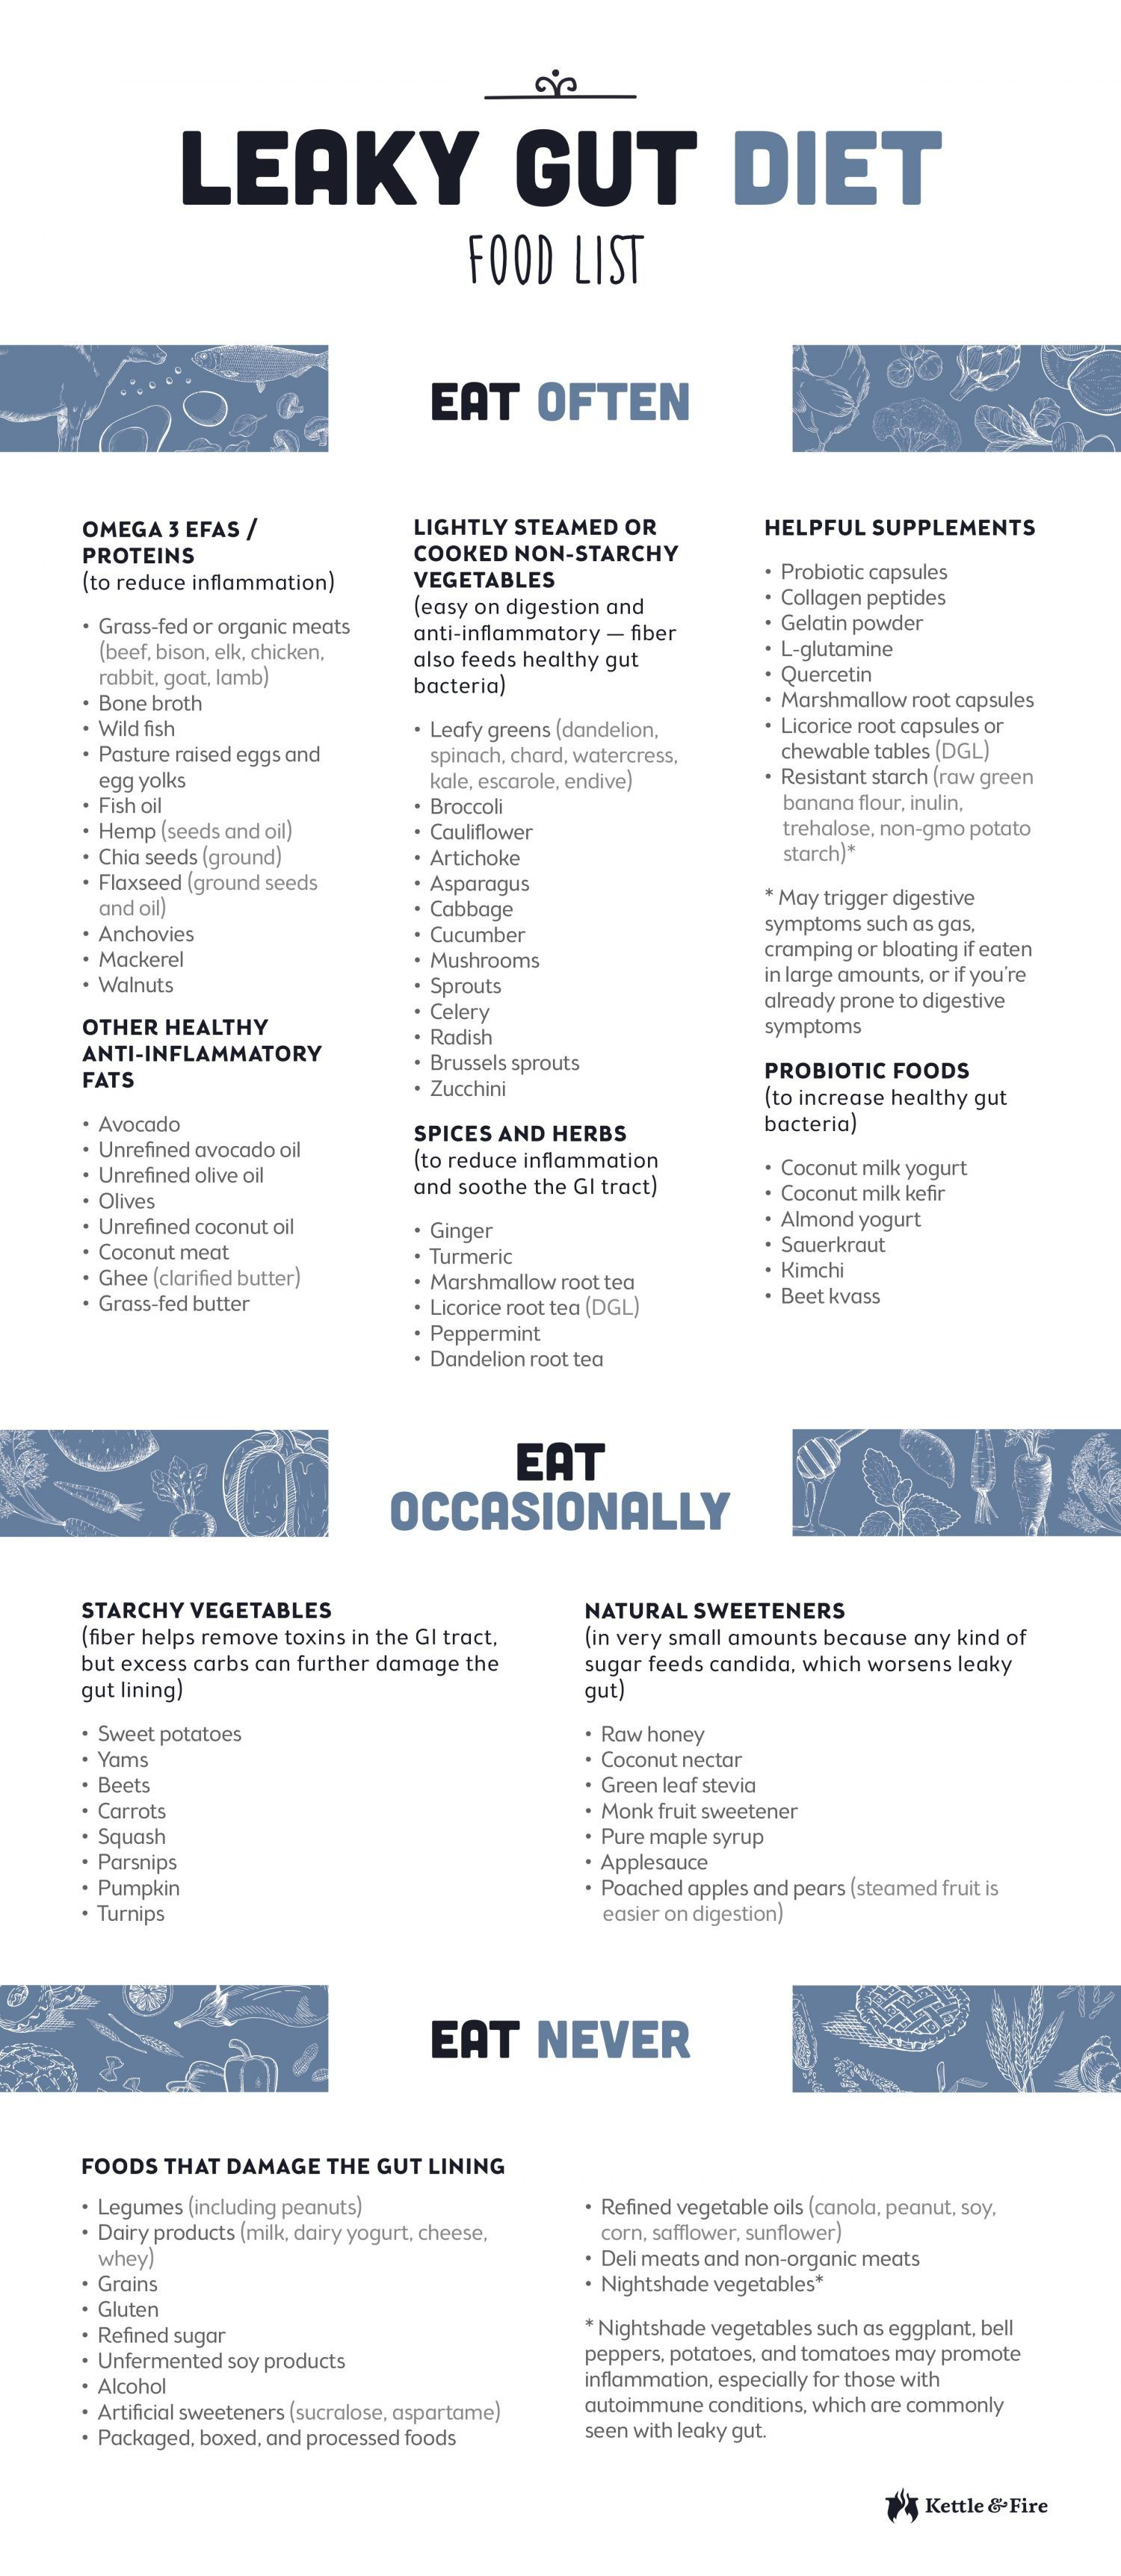 Read The Full Article And Download A Print Friendly Leaky Gut Diet Food List For Free To Help Guide Your Choices When It Comes To Grocery Shopping And Meal